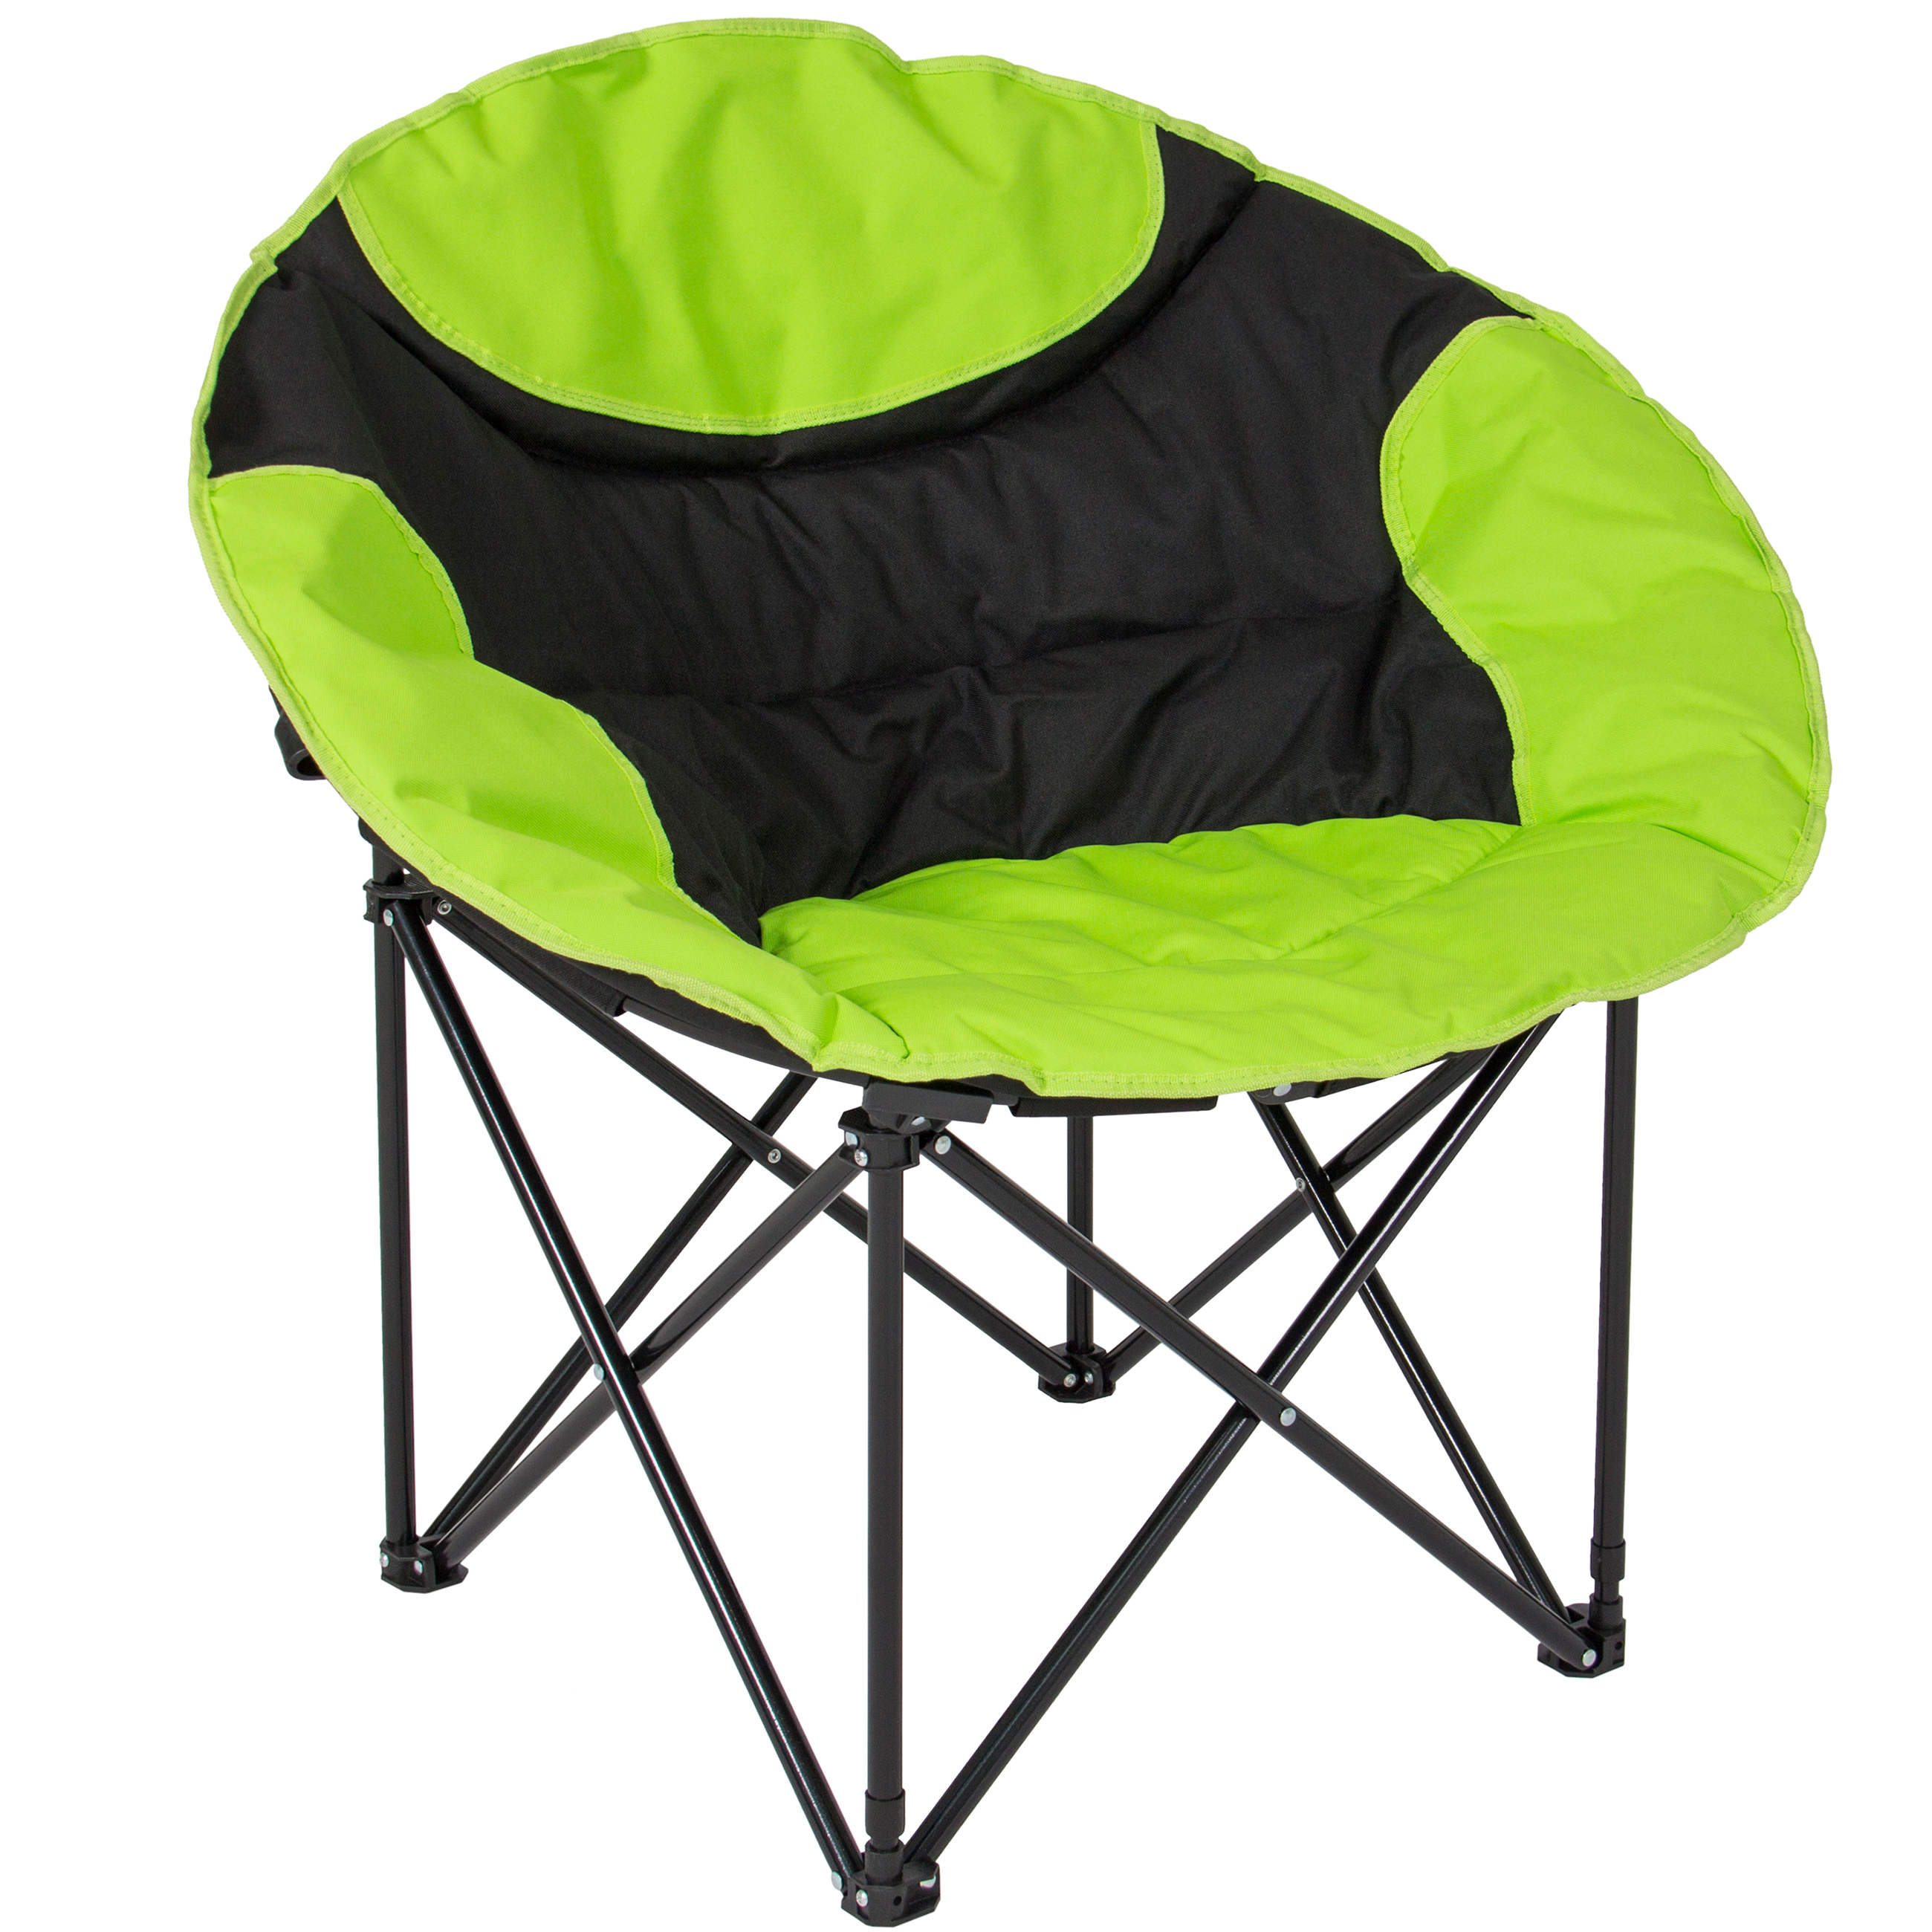 Sports & Outdoors Camping chairs, Outdoor chairs